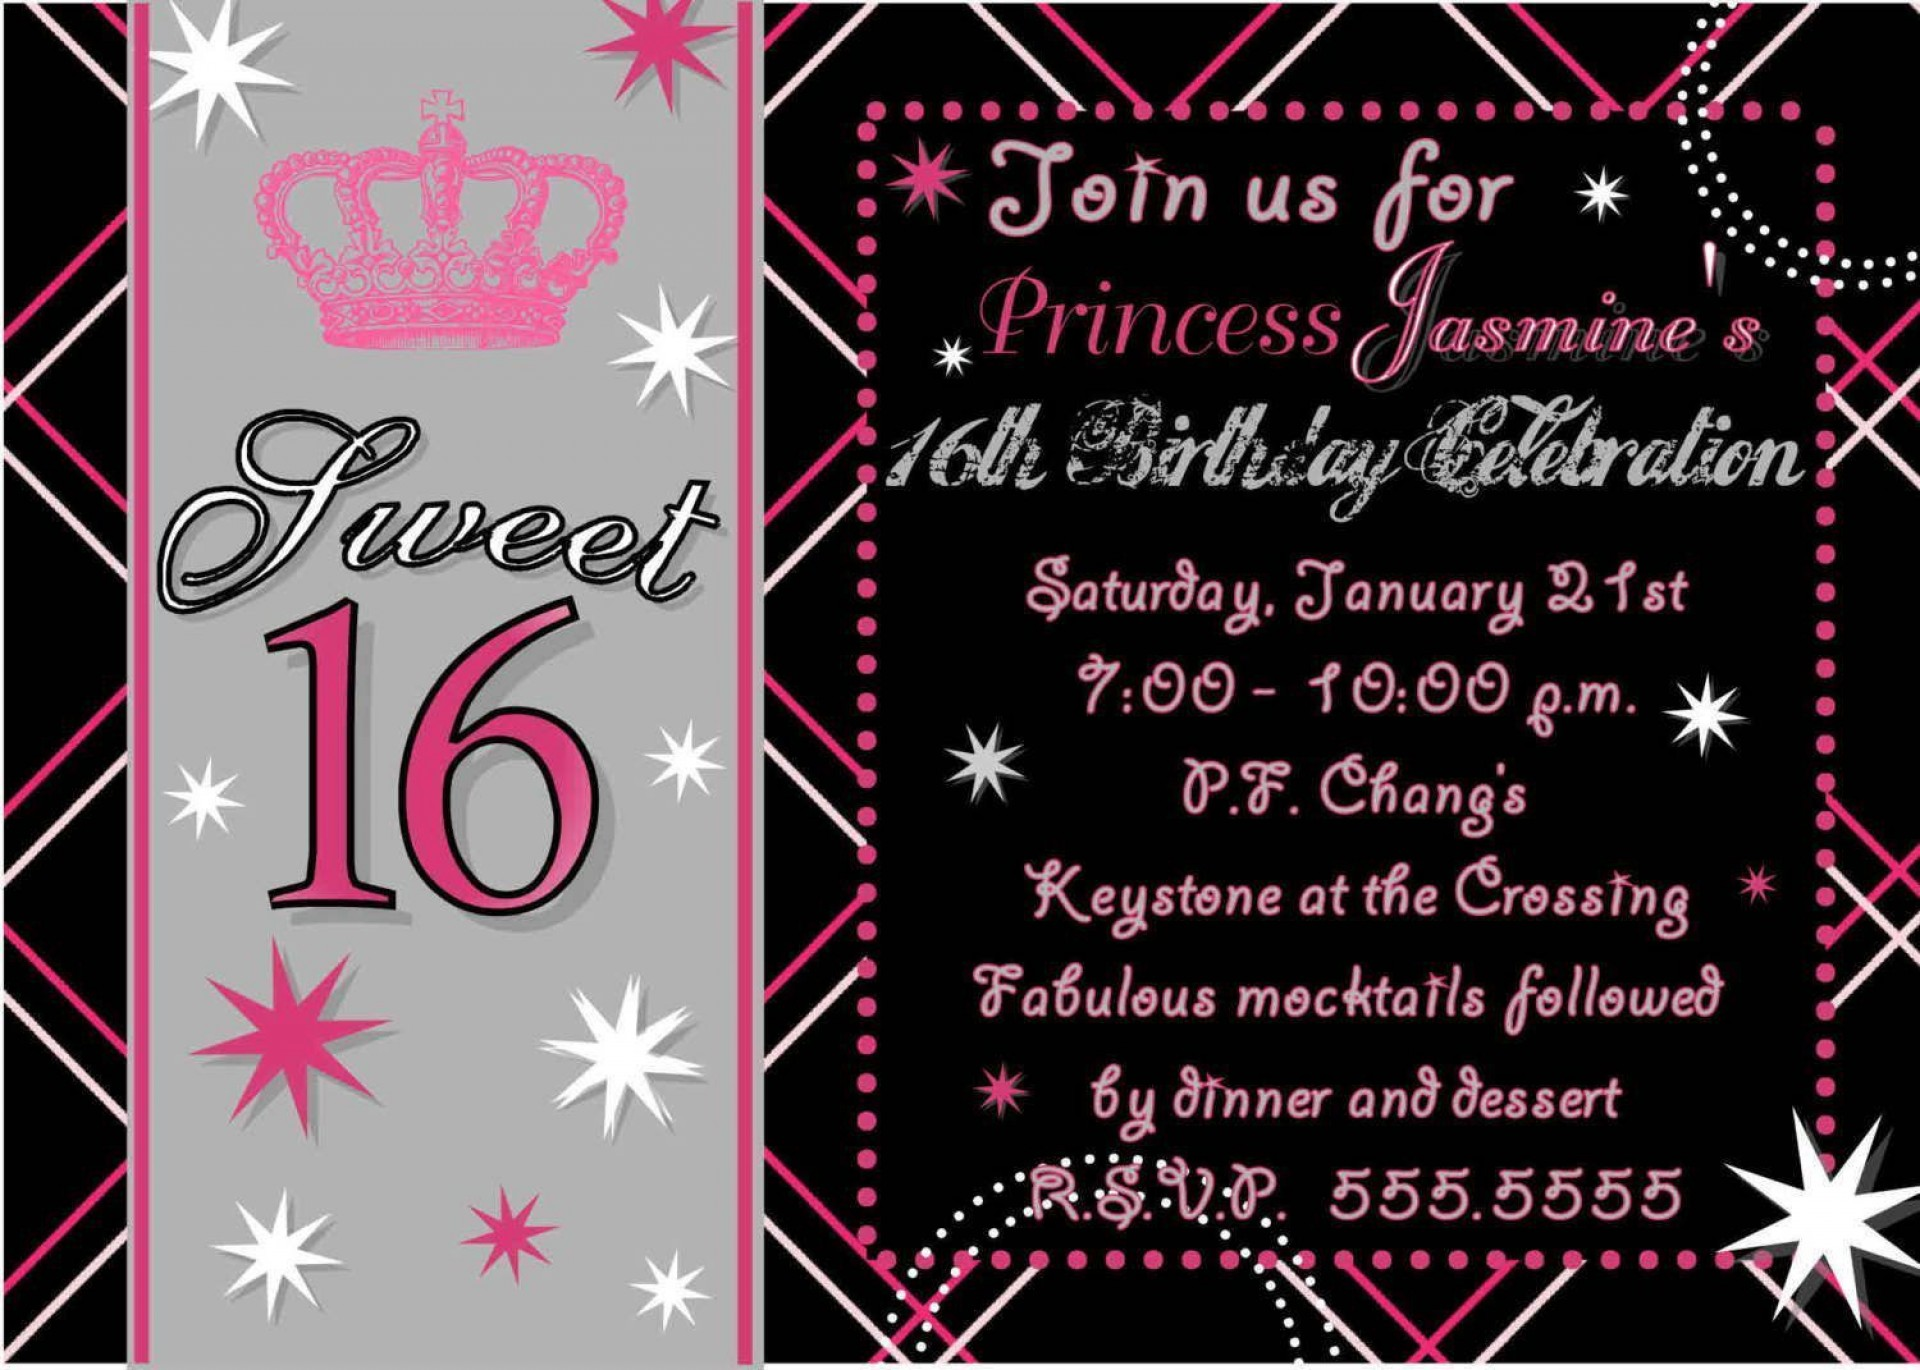 008 Formidable Sweet Sixteen Invitation Template Idea  Templates Blue 16 Party Free1920